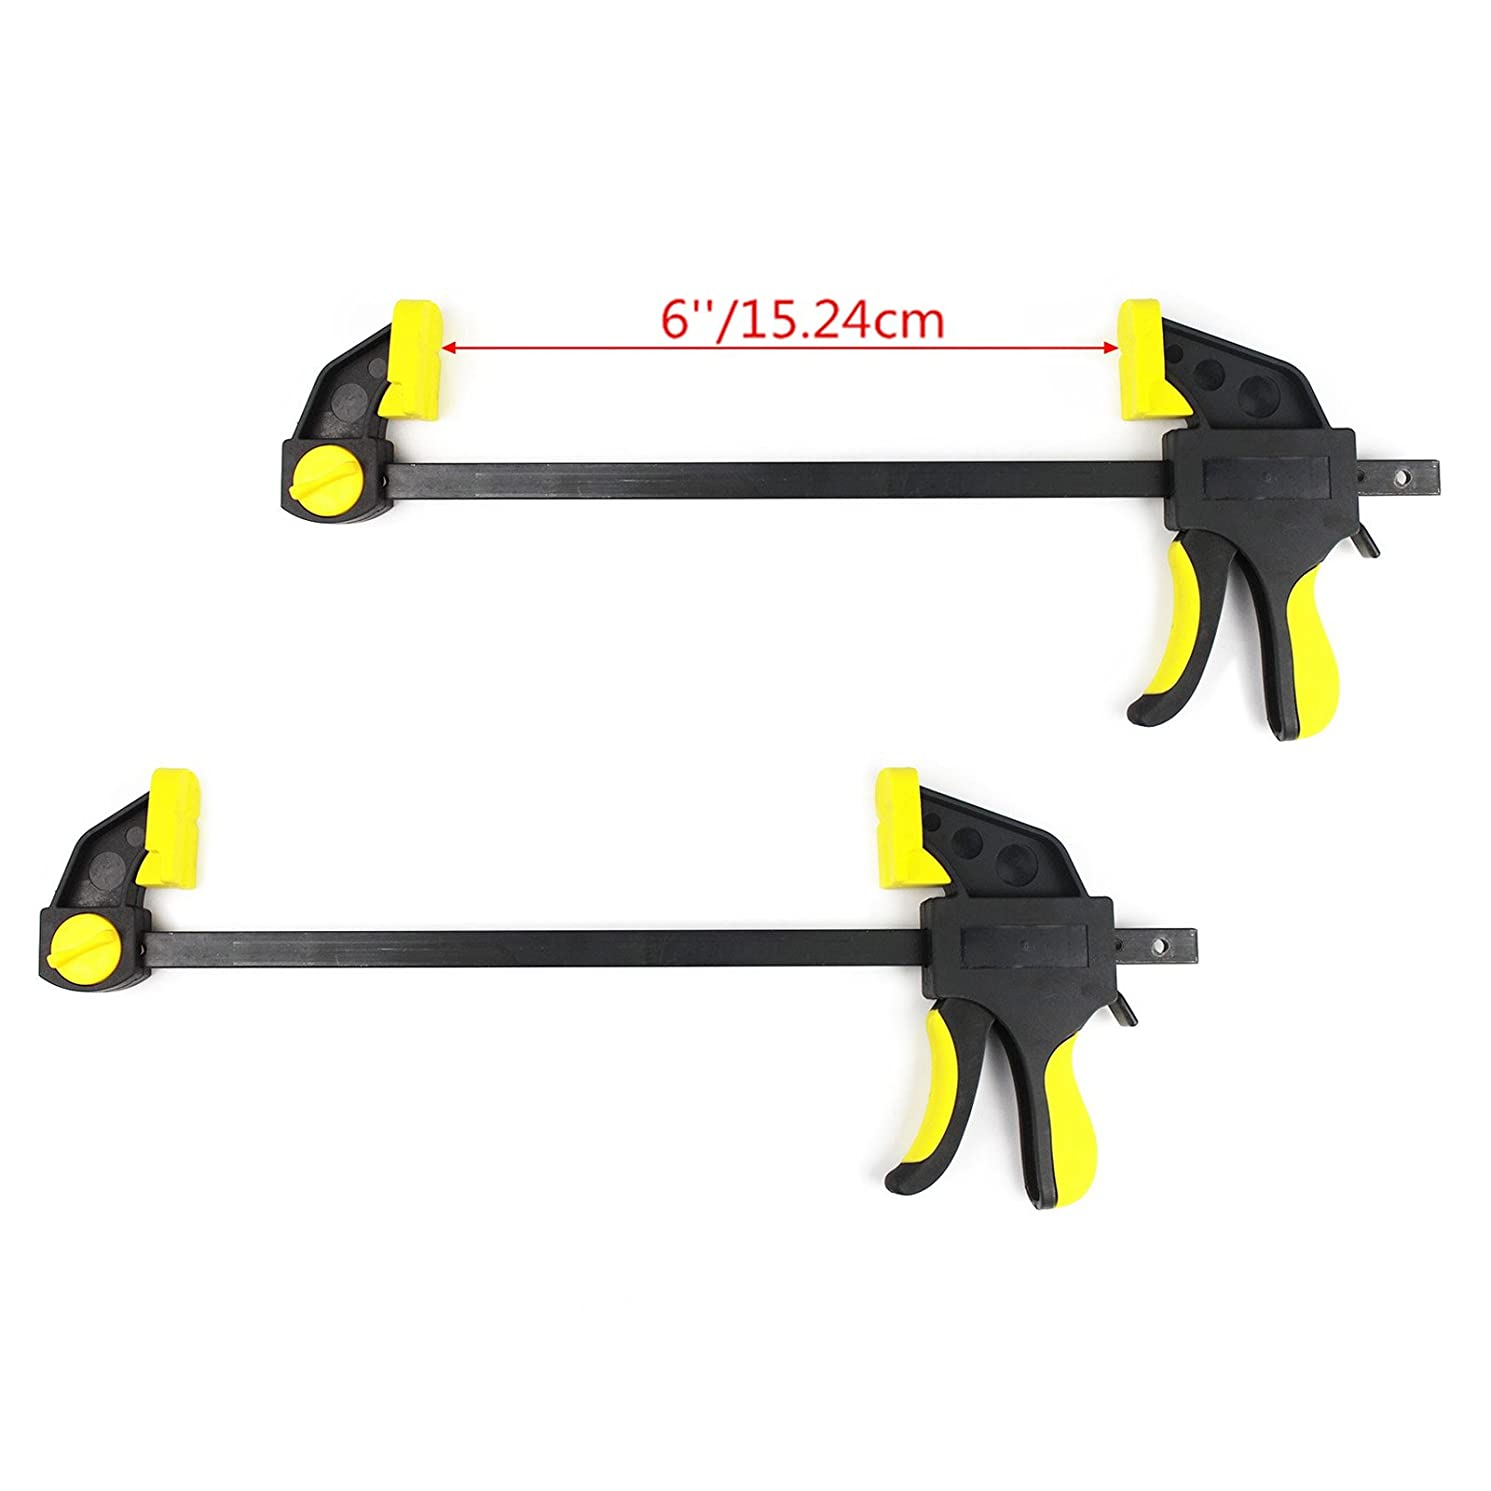 Ratchet Quick Bar Clamp and Spreader, PANGOLIN 6 Inch Quick-Release Clamps One Handed Bar Performance for Woodworking,Handyman and Keep with 3 Year Warranty-(2 Pack)